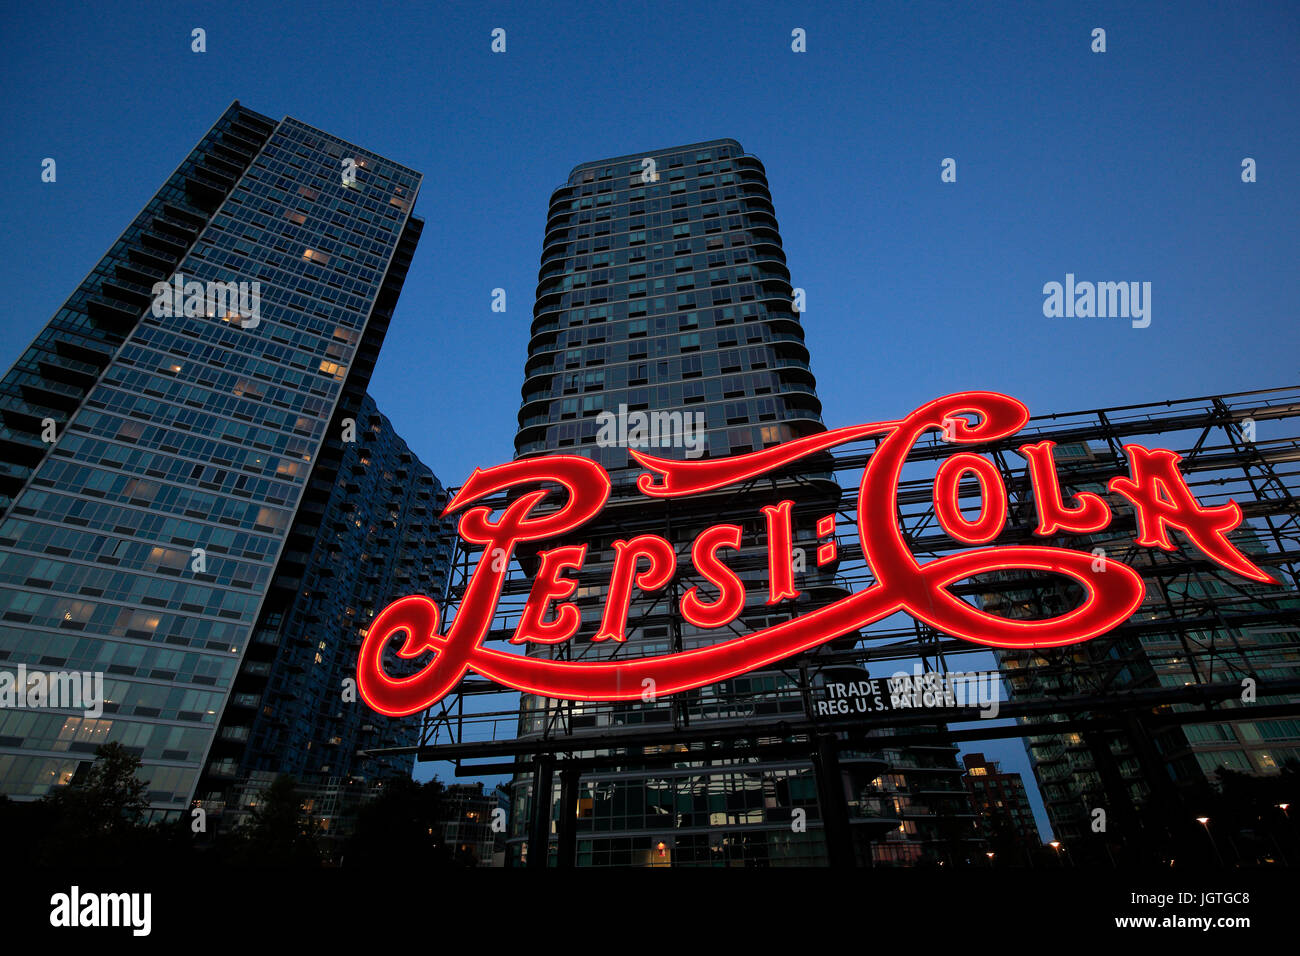 Pepsi neon sign in Long Island City New York - Stock Image